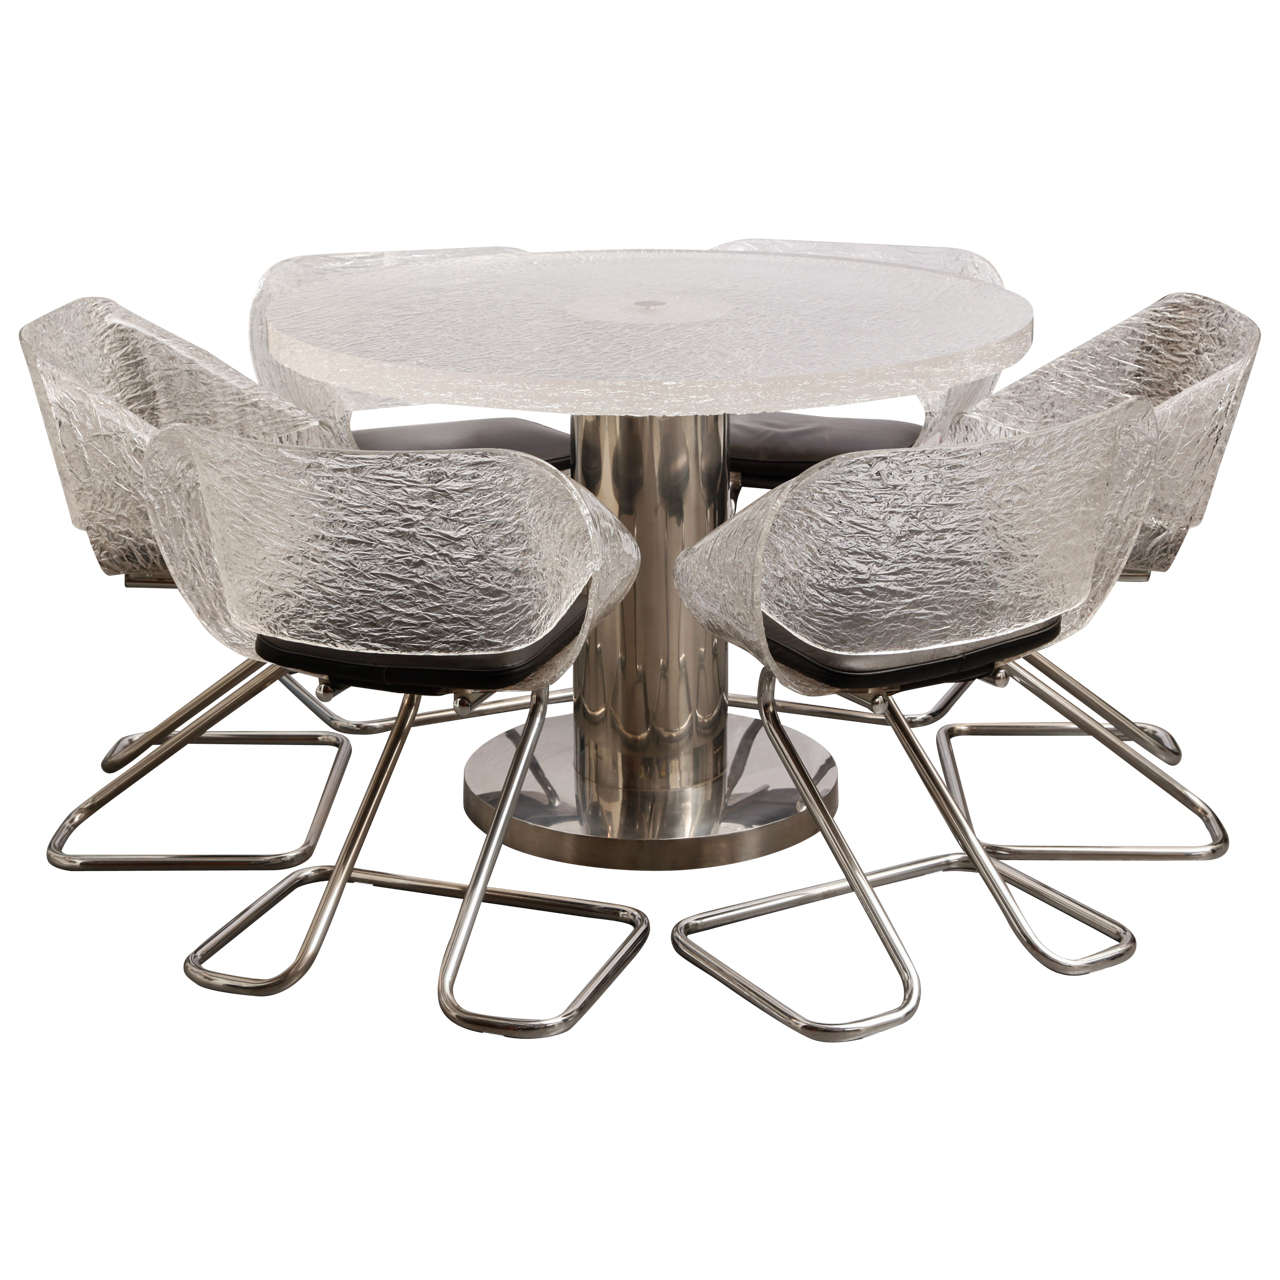 Italian design guzzini plexiglas dining table and six for Italian design dining tables